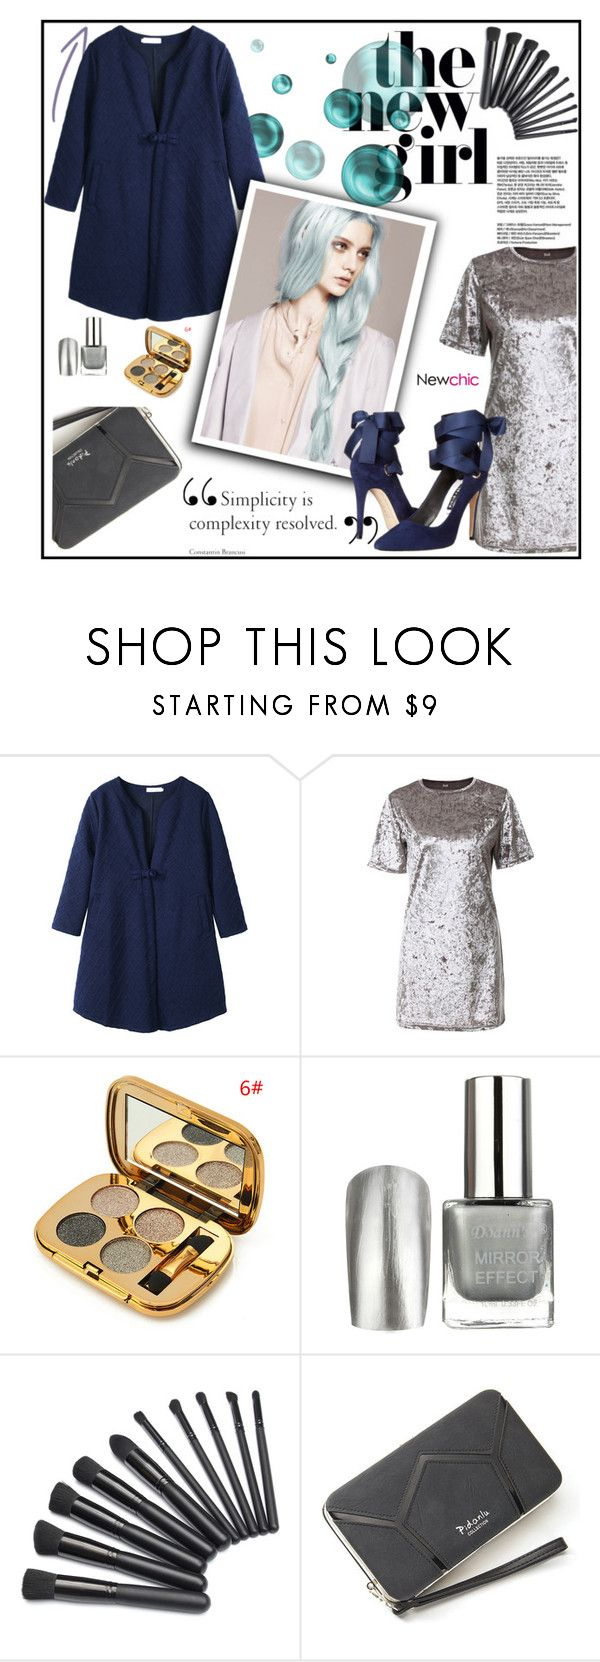 """""""Newchic 4 ..."""" by cindy88 ❤ liked on Polyvore"""